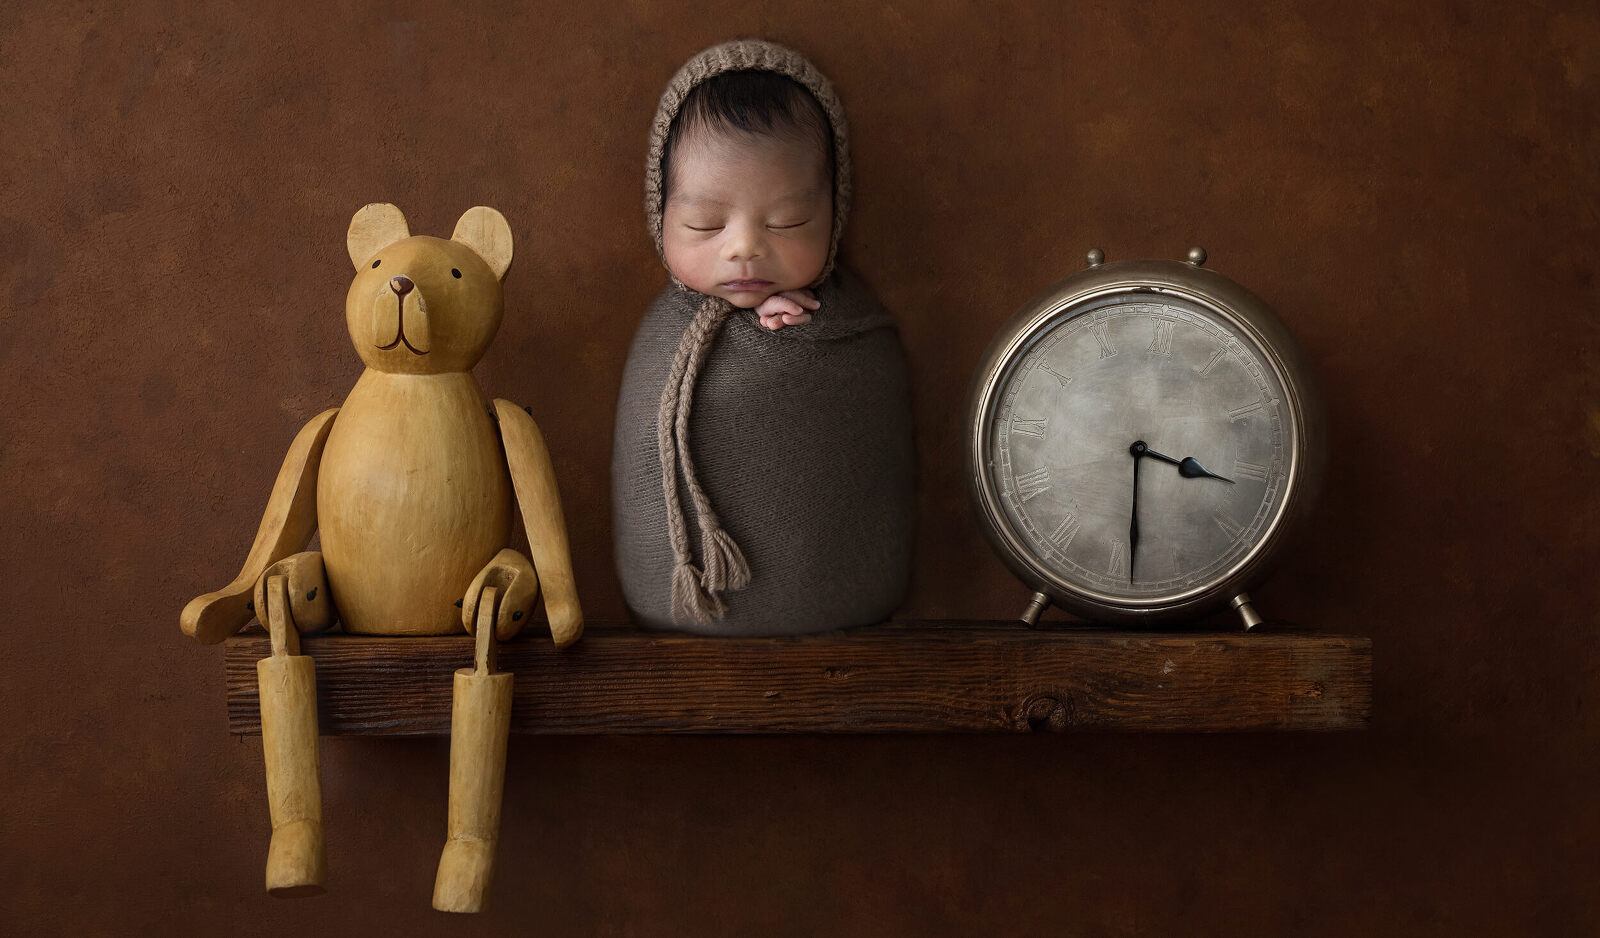 Darwin Photographer little cherub newborn baby, clock, teddy